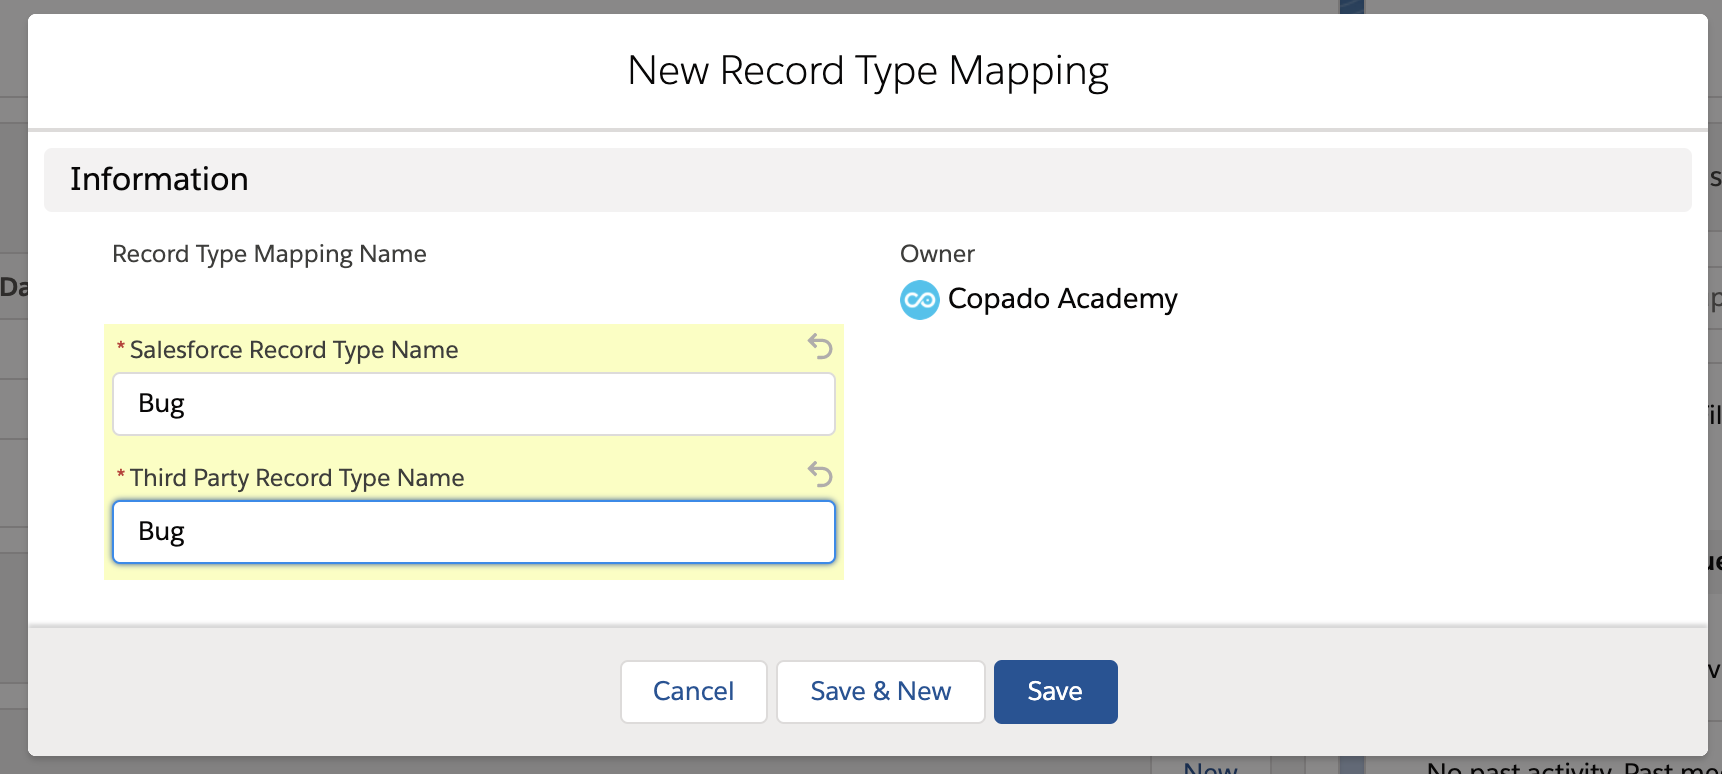 Data required for creating a new record type mapping